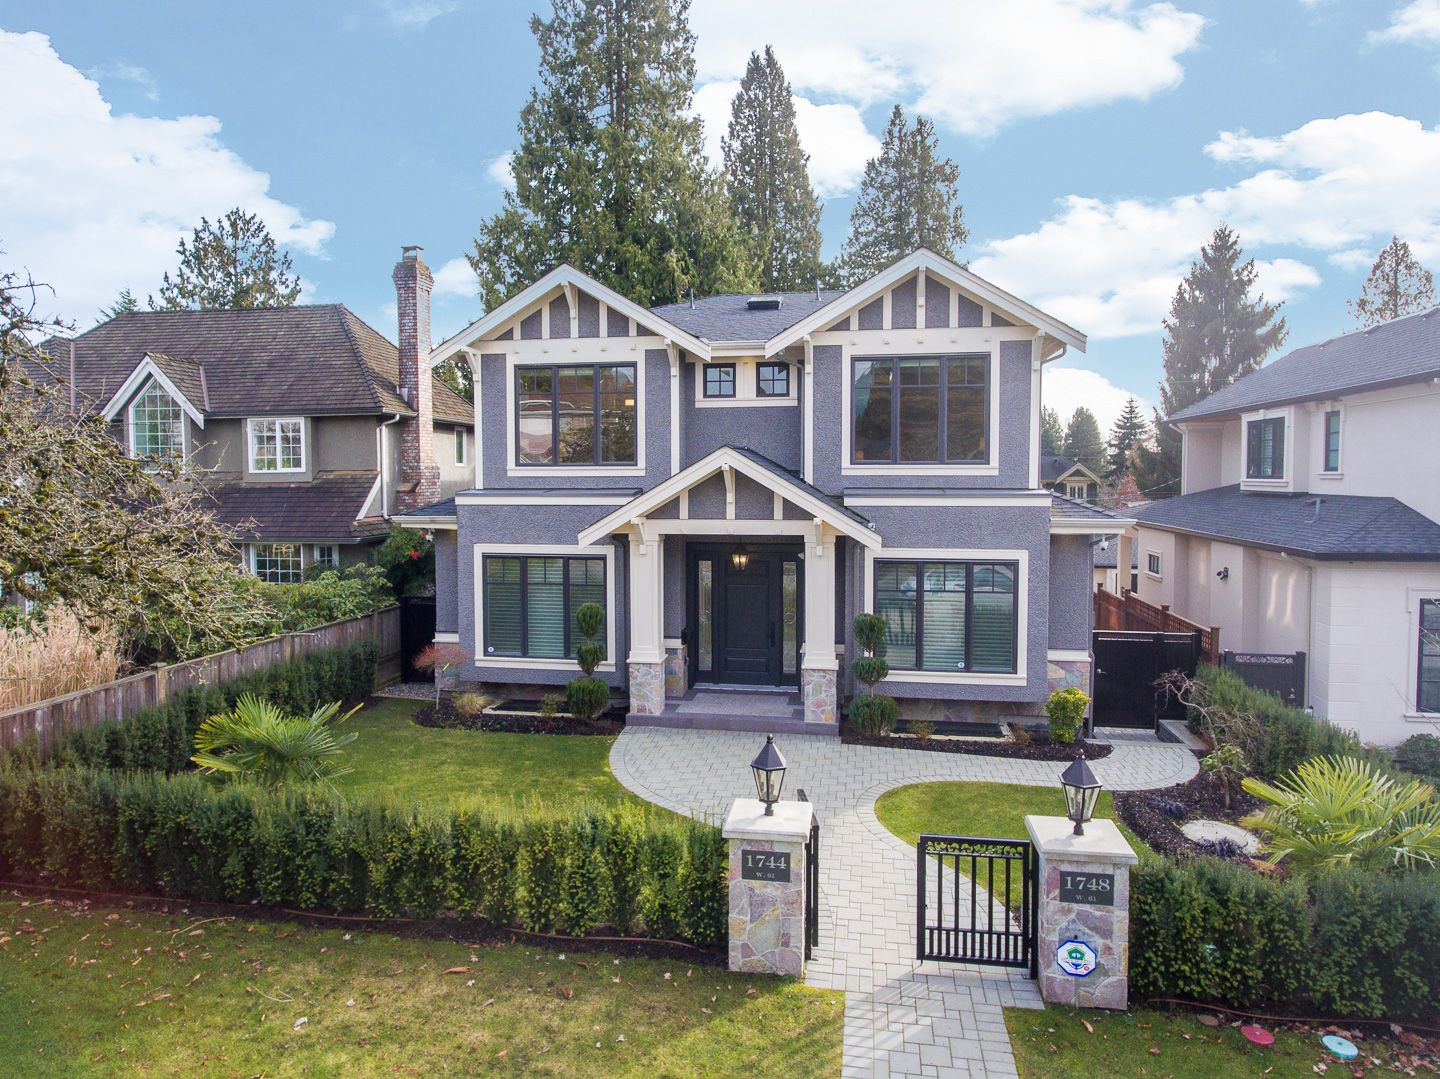 Main Photo: 1744 WEST 61ST AVE in VANCOUVER: South Granville House for sale (Vancouver West)  : MLS®# R2546980